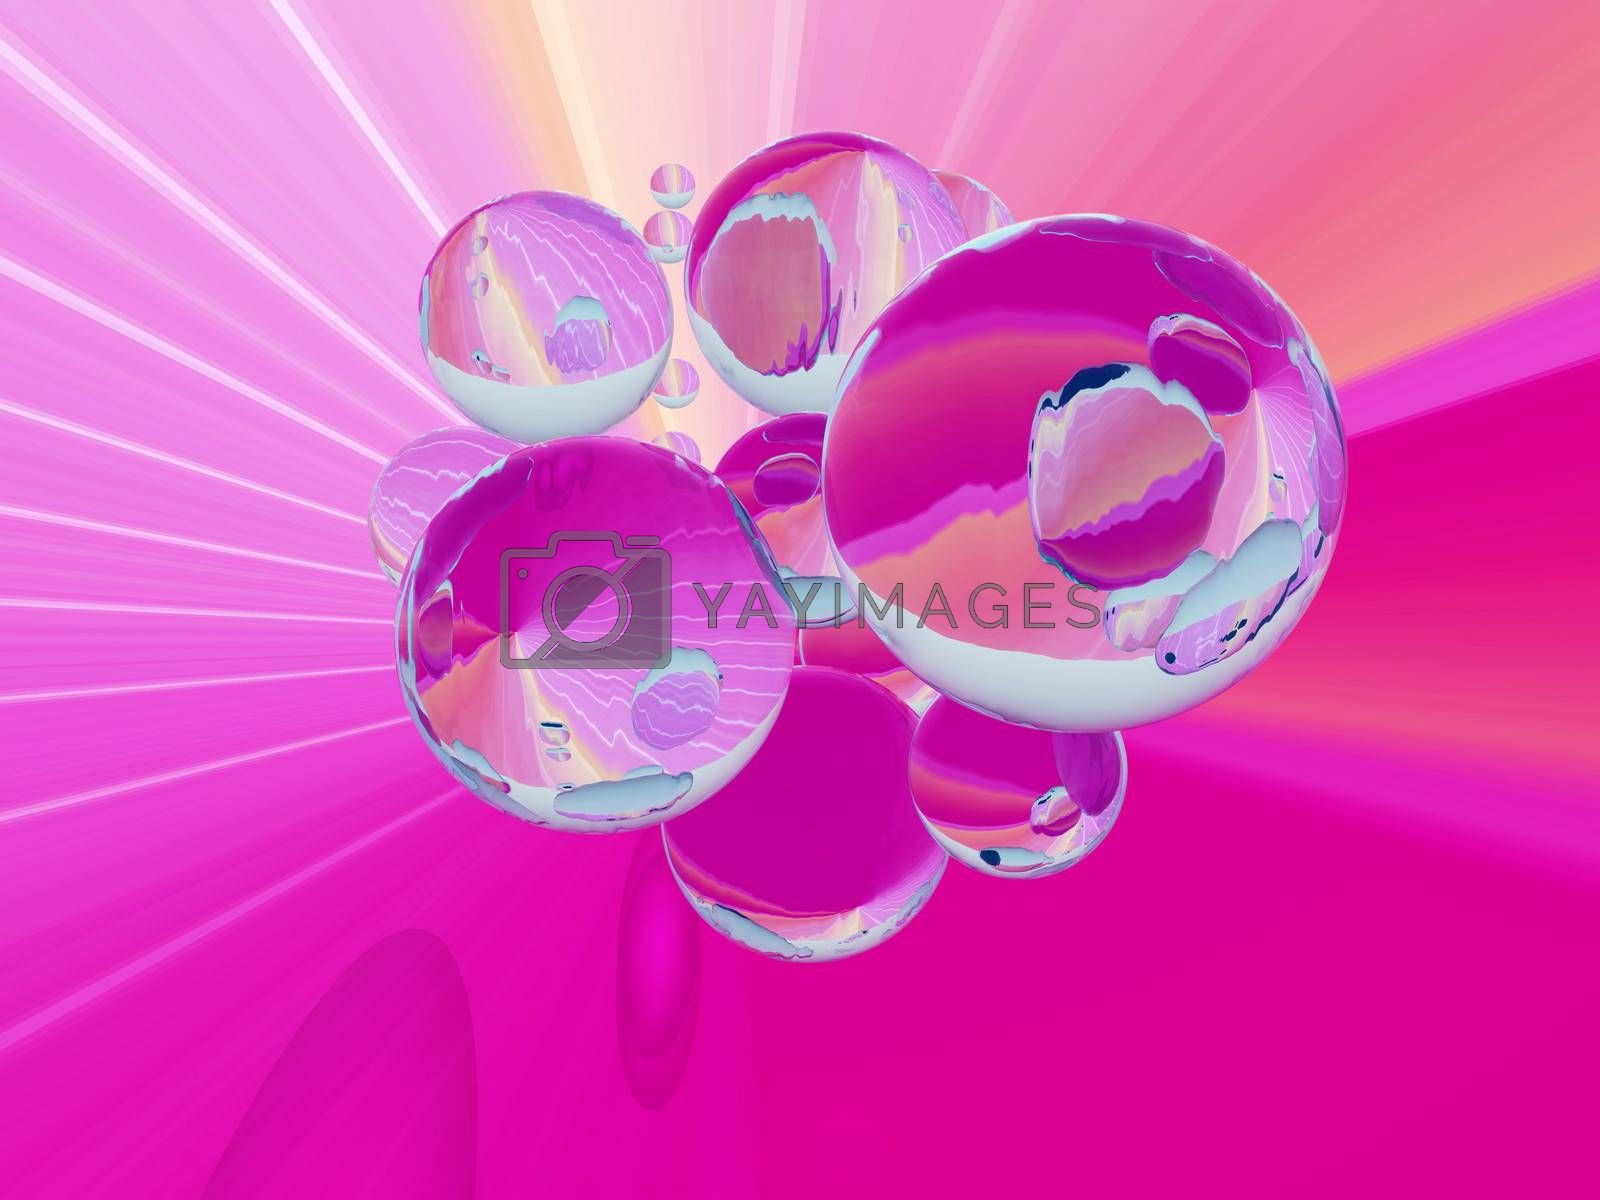 spychedelic illustration with transparent bubbles  in pink colors